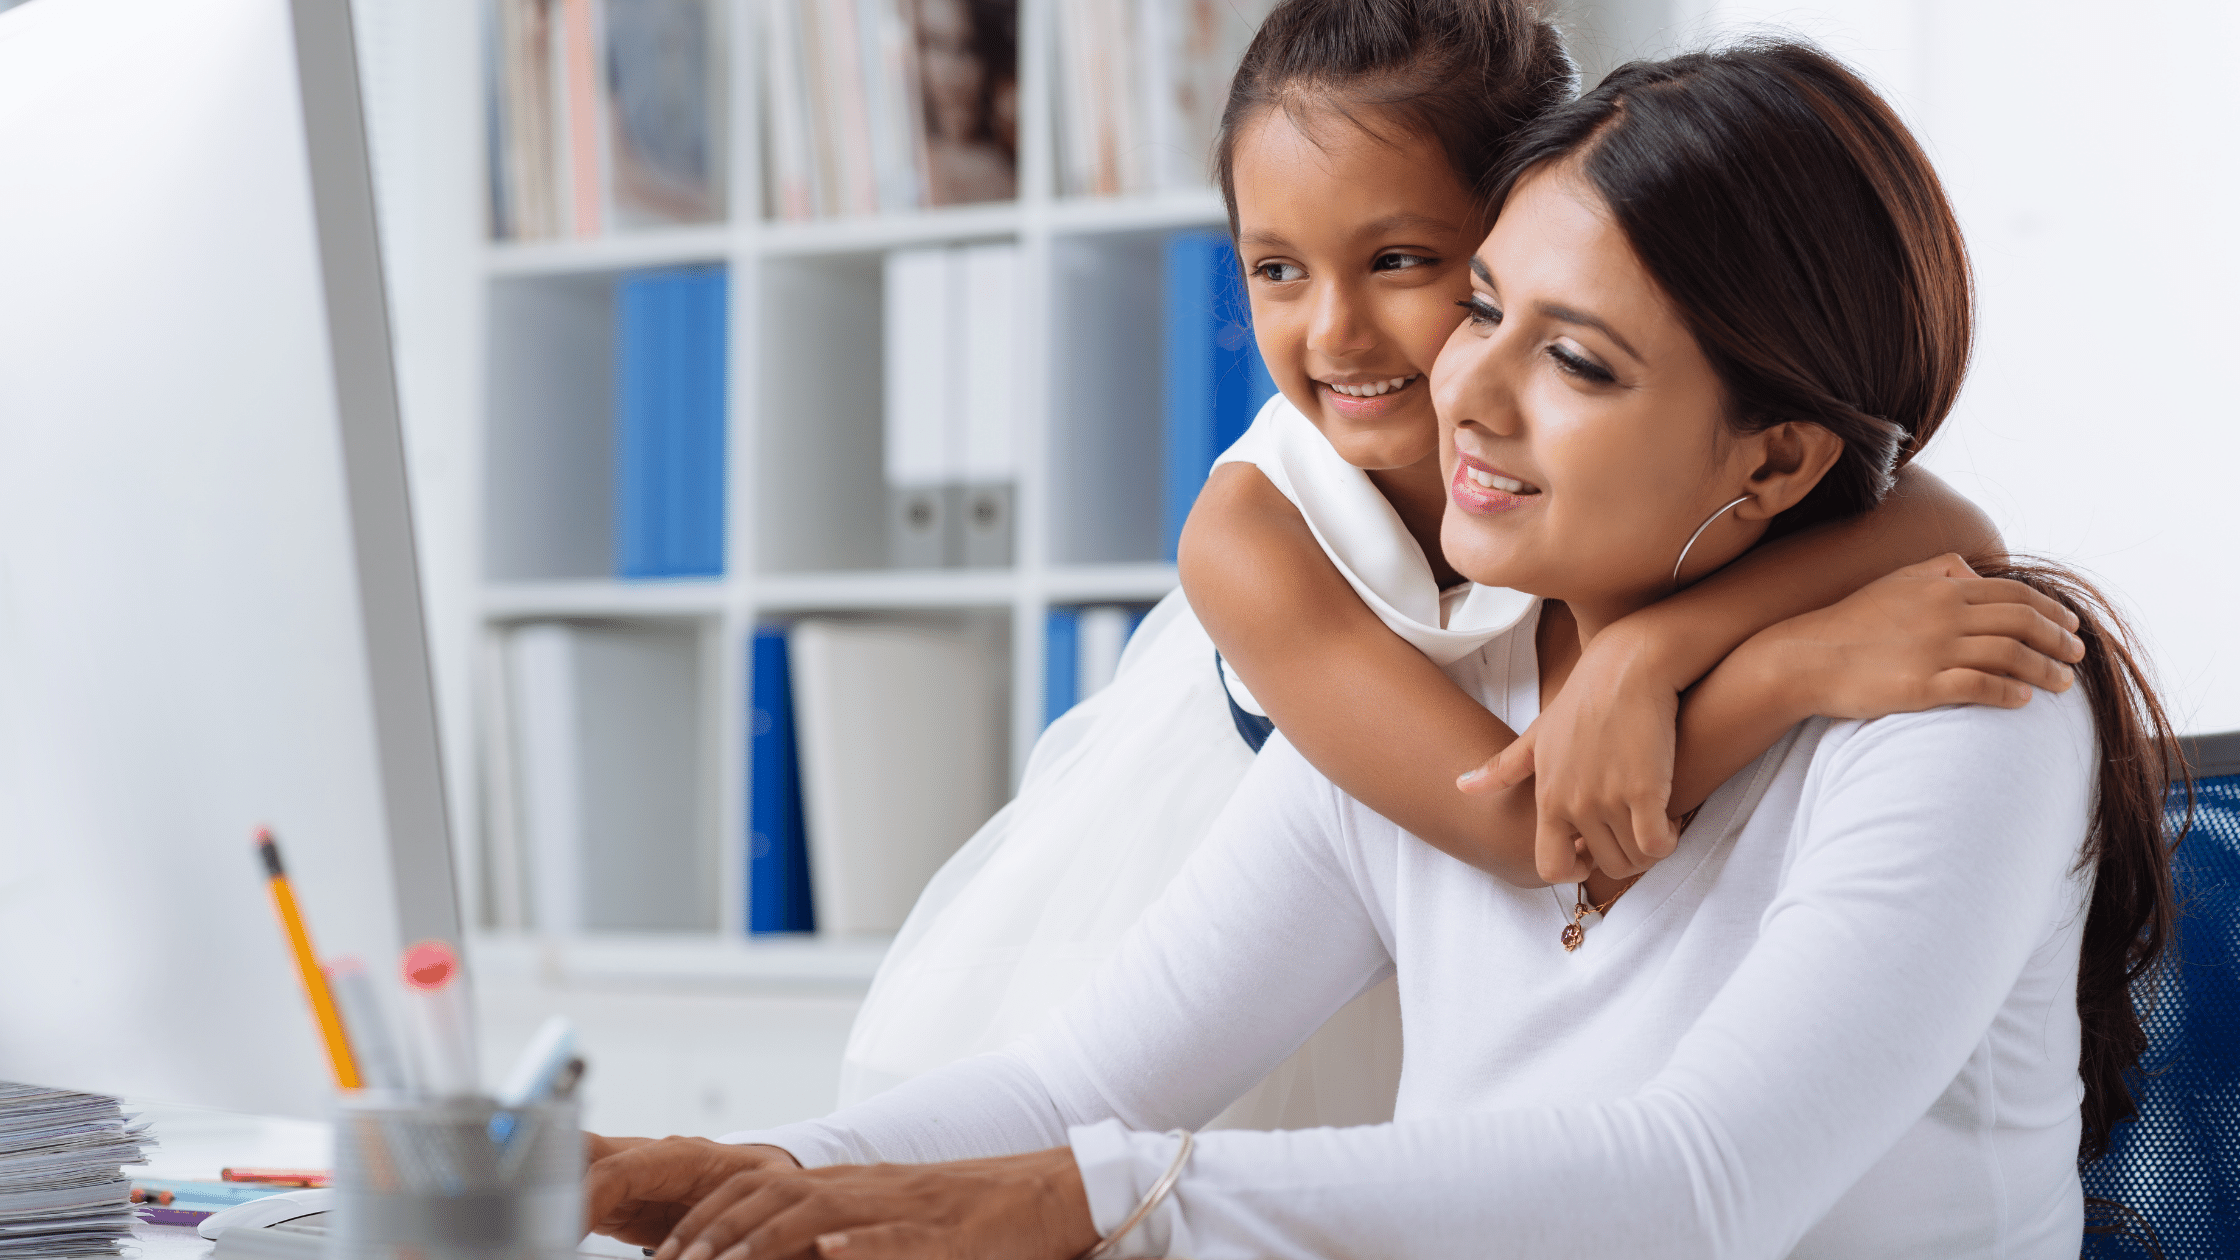 The Working Mother's Career Dilemma